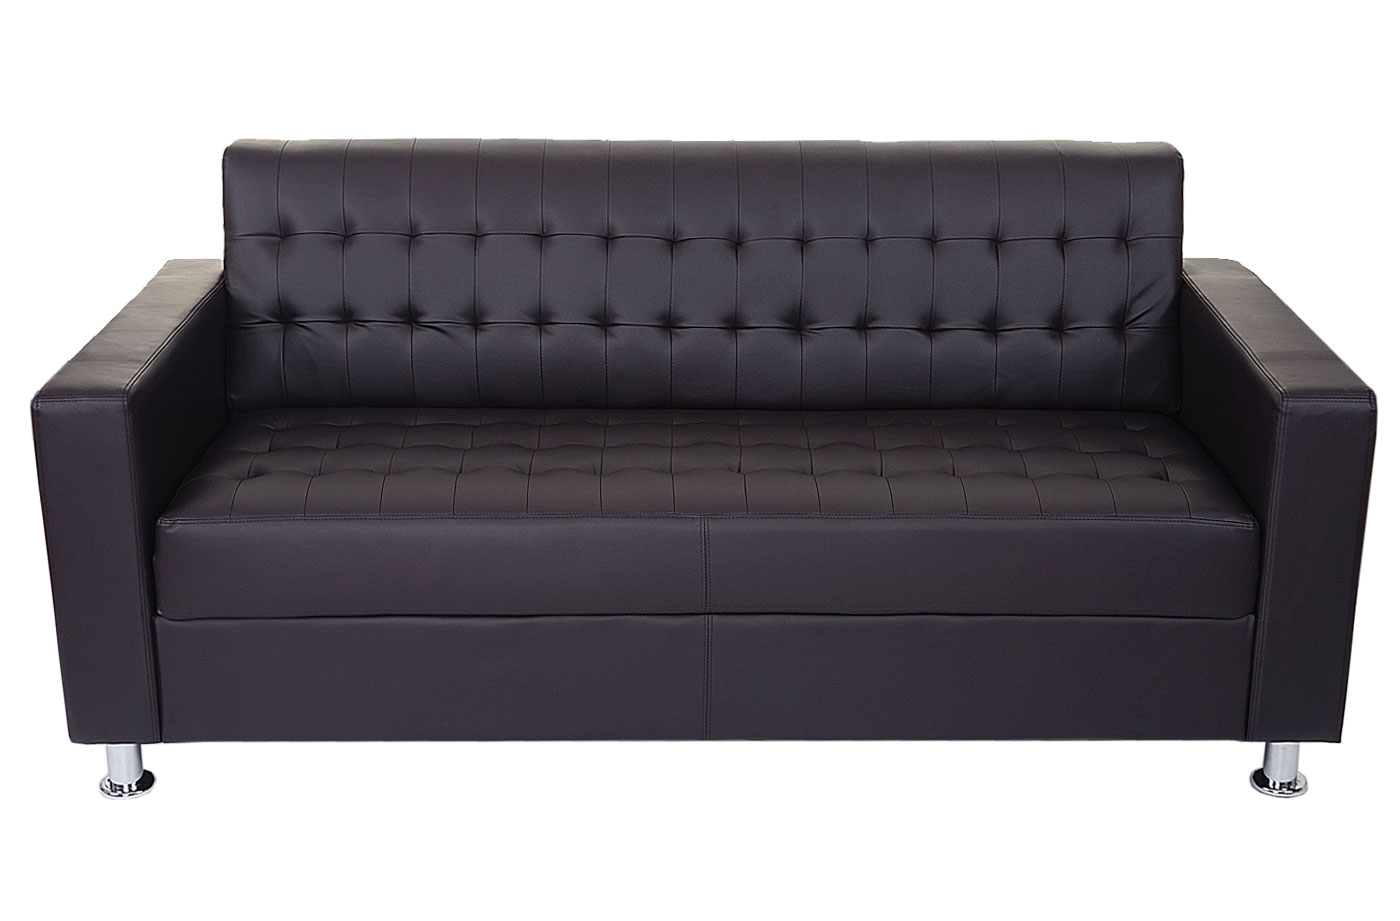 3er sofa kunda couch loungesofa kunstleder metall f e ebay. Black Bedroom Furniture Sets. Home Design Ideas